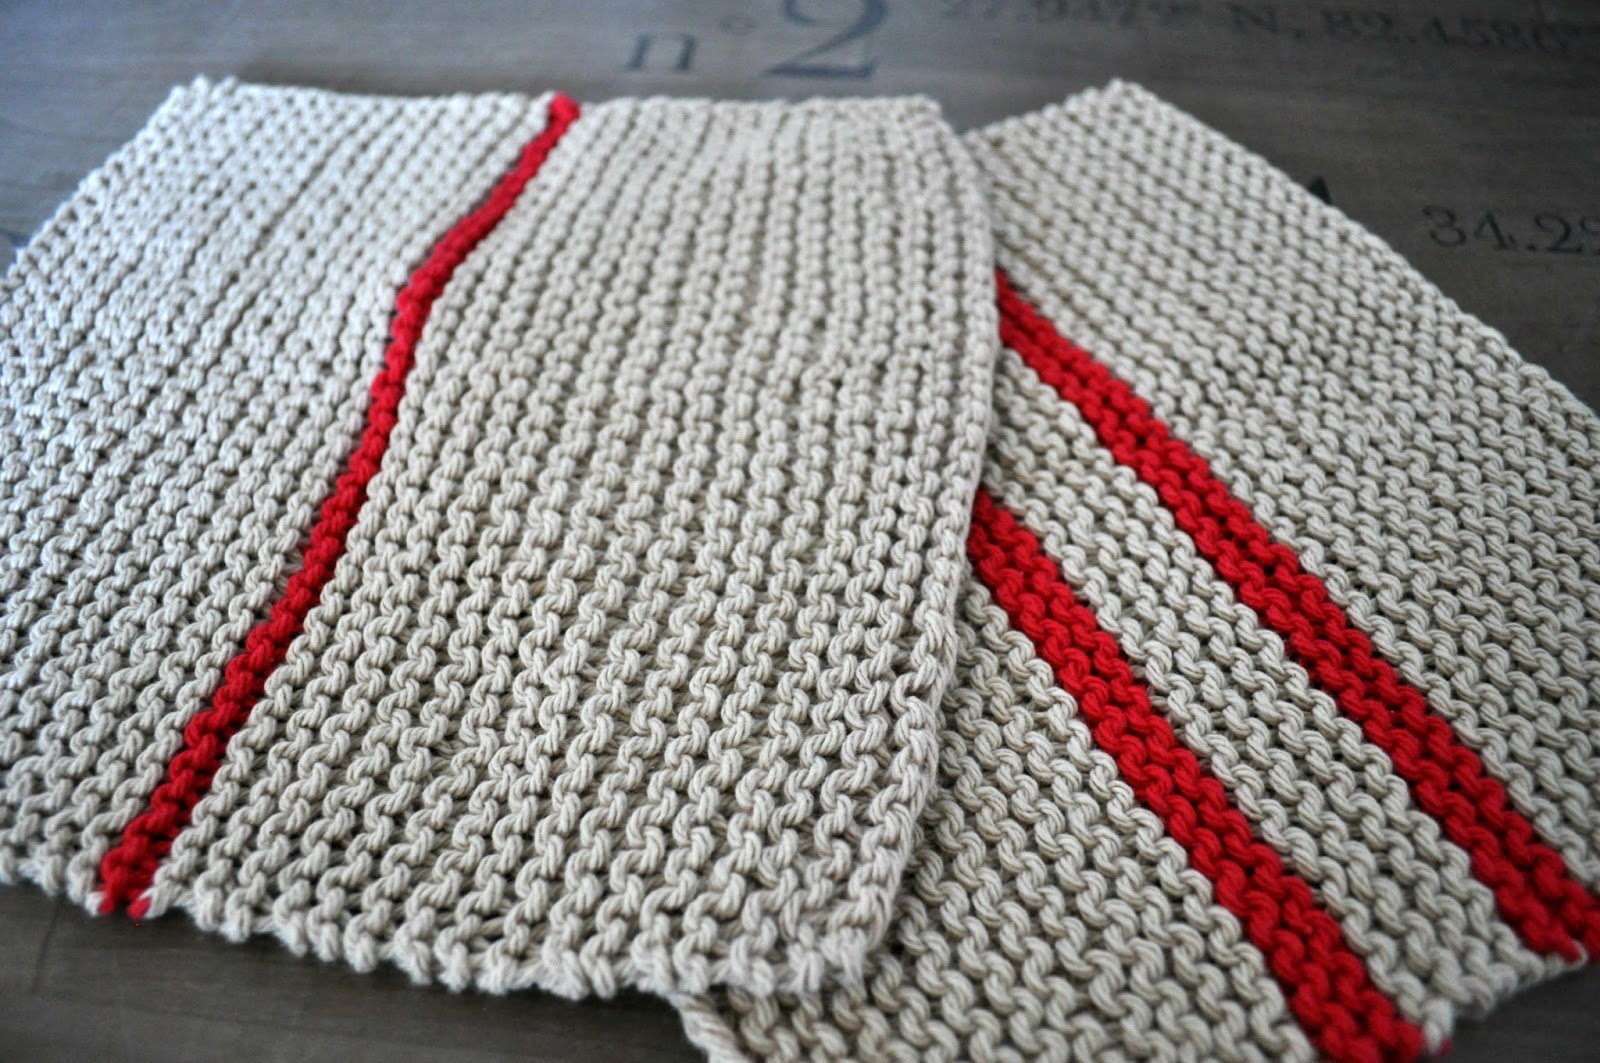 Barefoot Stamp: Knitted pattern hand towels